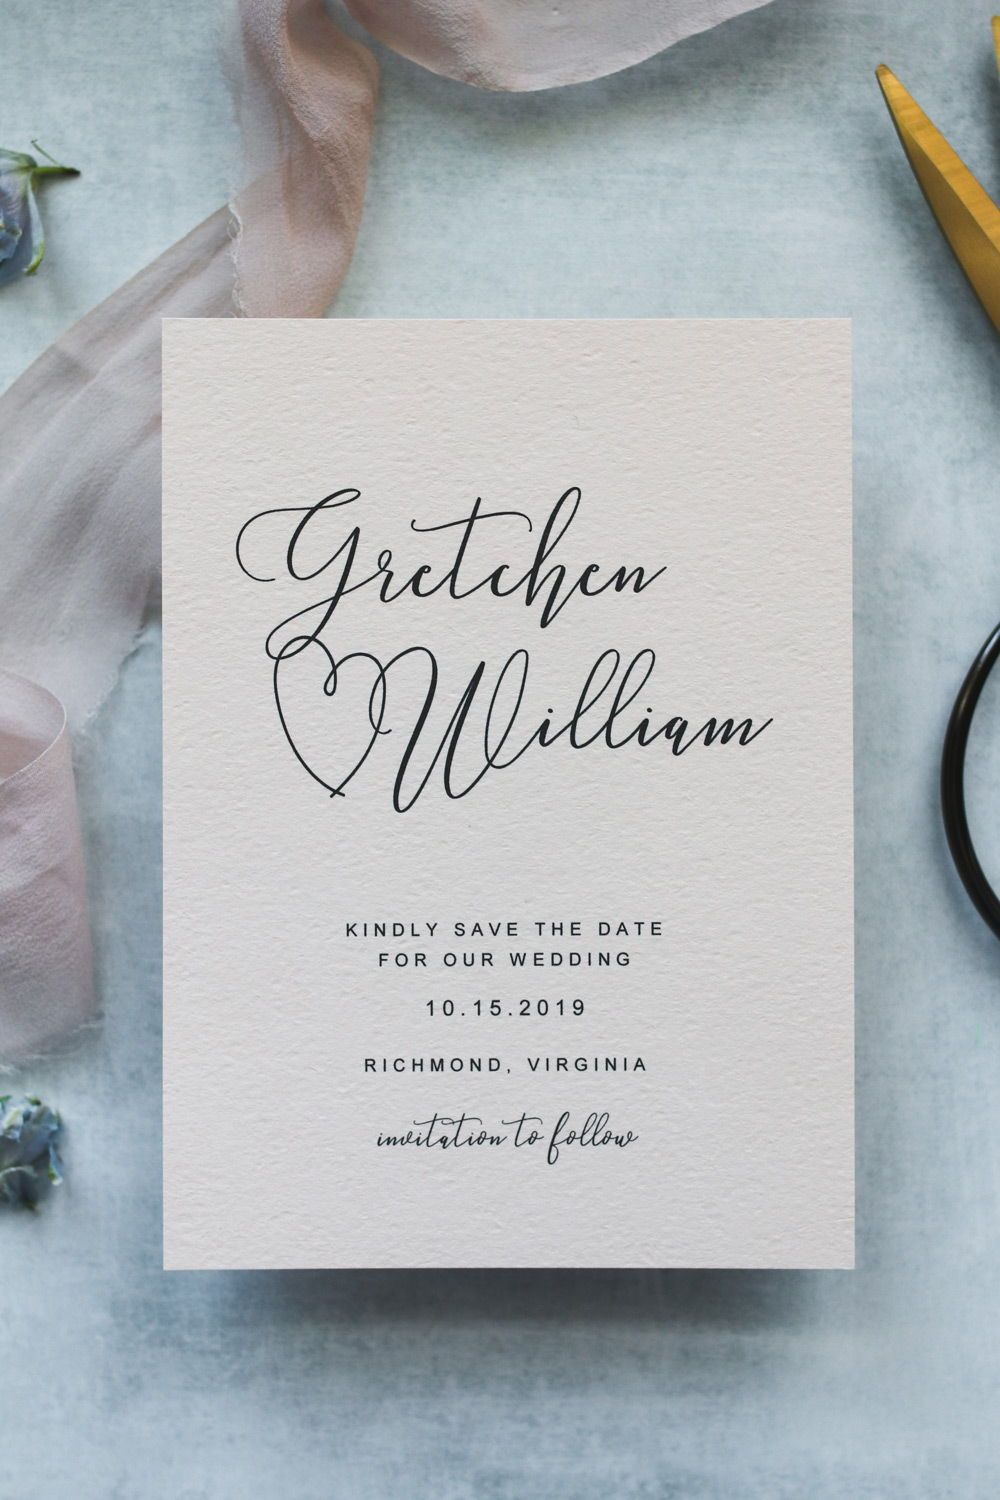 Free Save The Date Templates   Save The Date Ideas   Save The Date - Free Printable Save The Date Invitation Templates